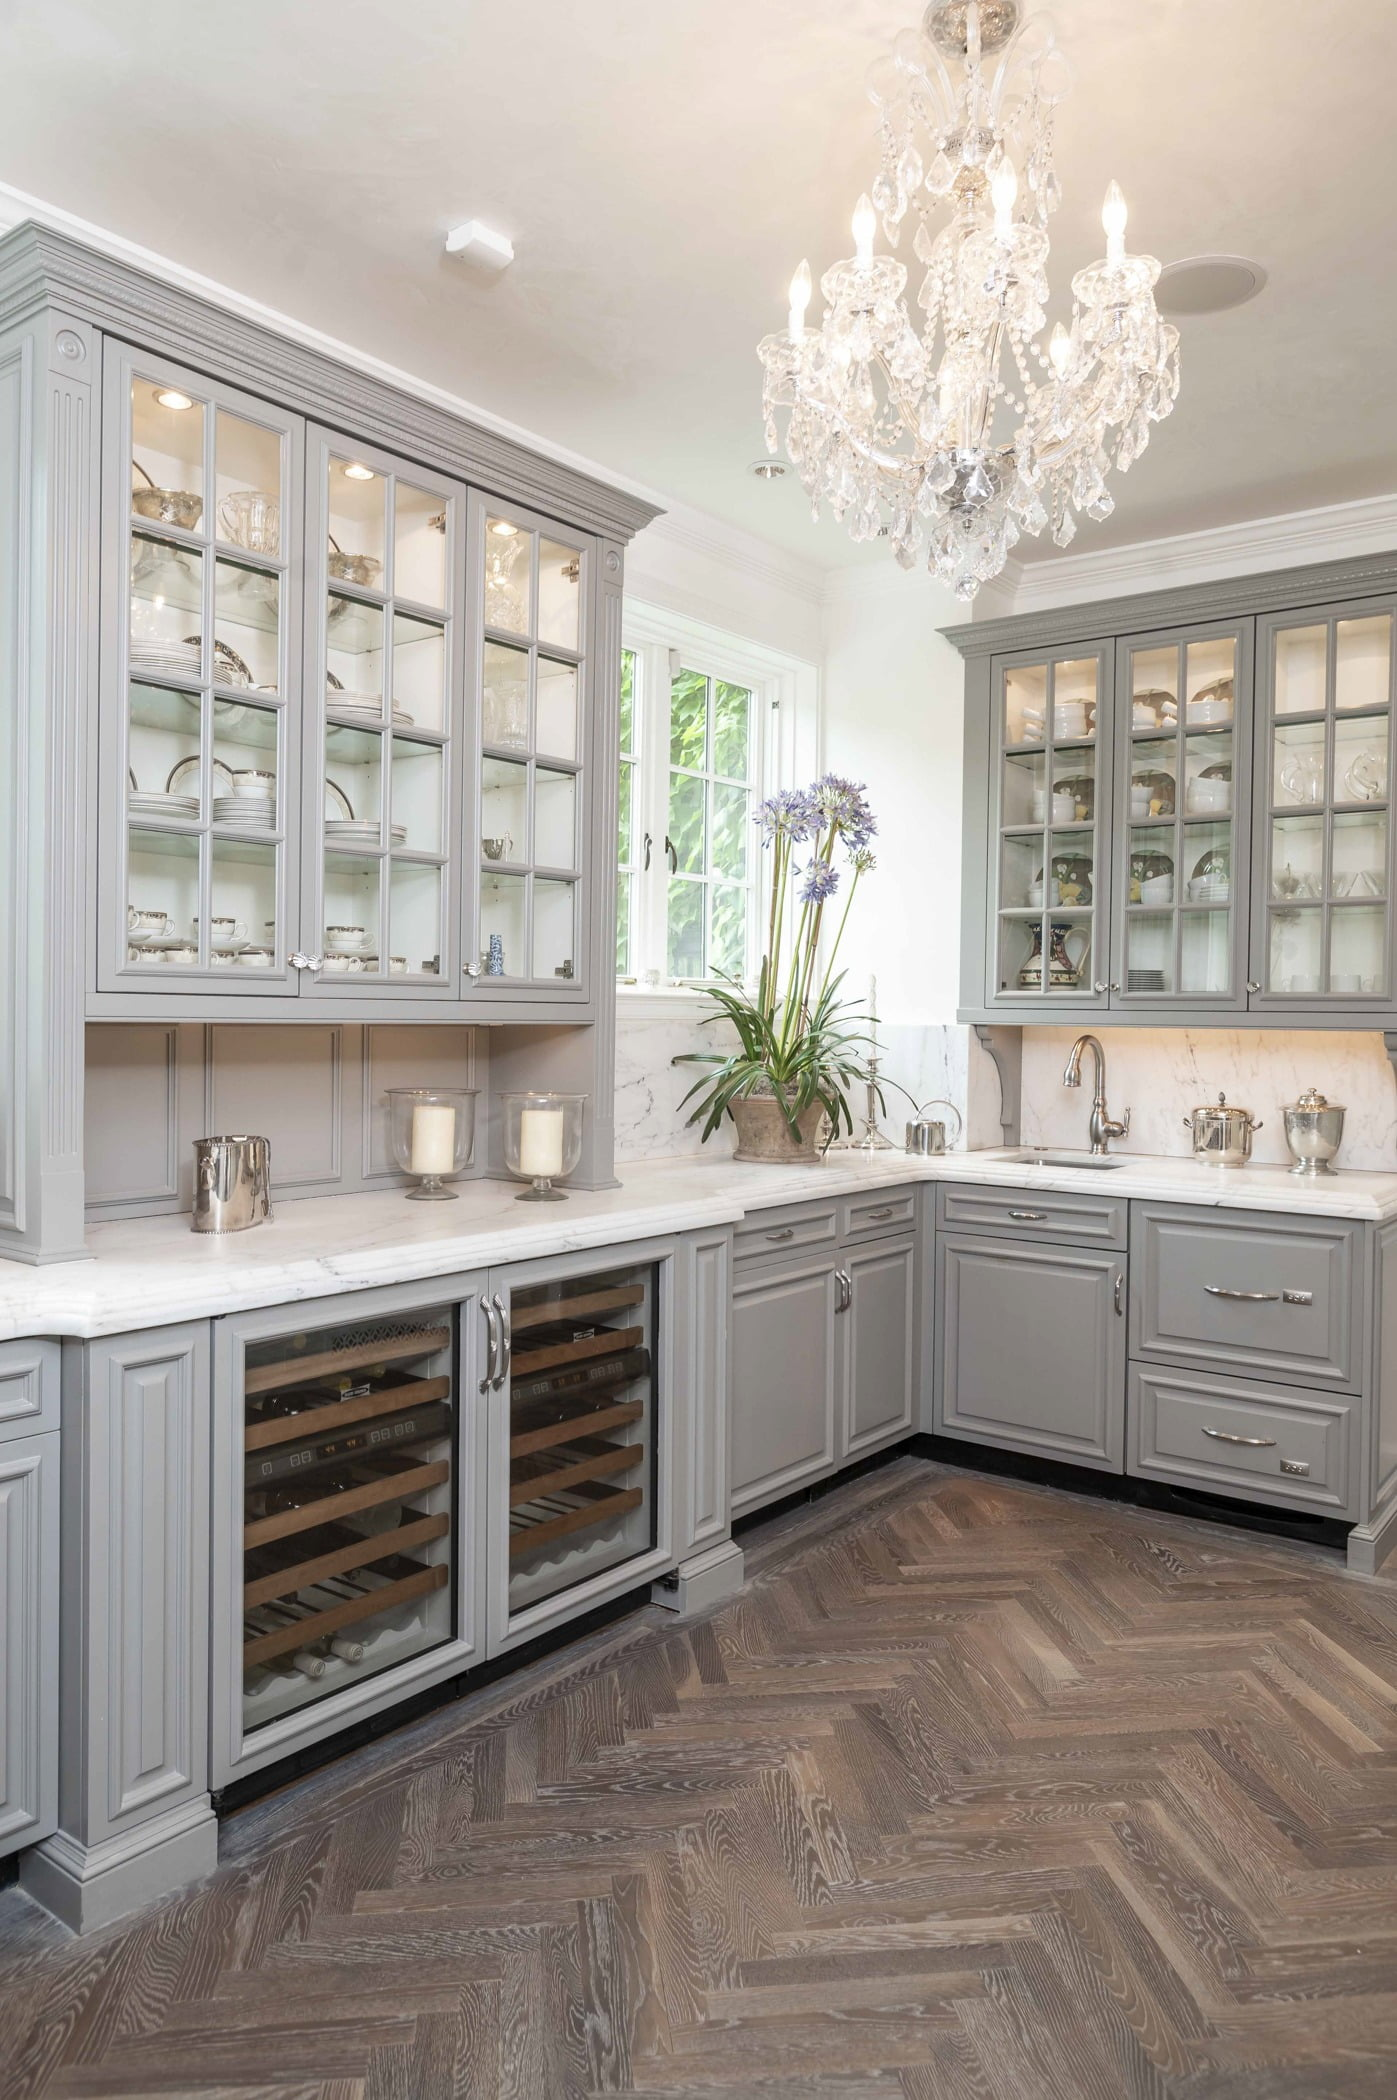 Traditional kitchen area with custom light grey cabinetry, marble countertops, ornate crystal chandelier, and dark chevron hardwood flooring (Different view)